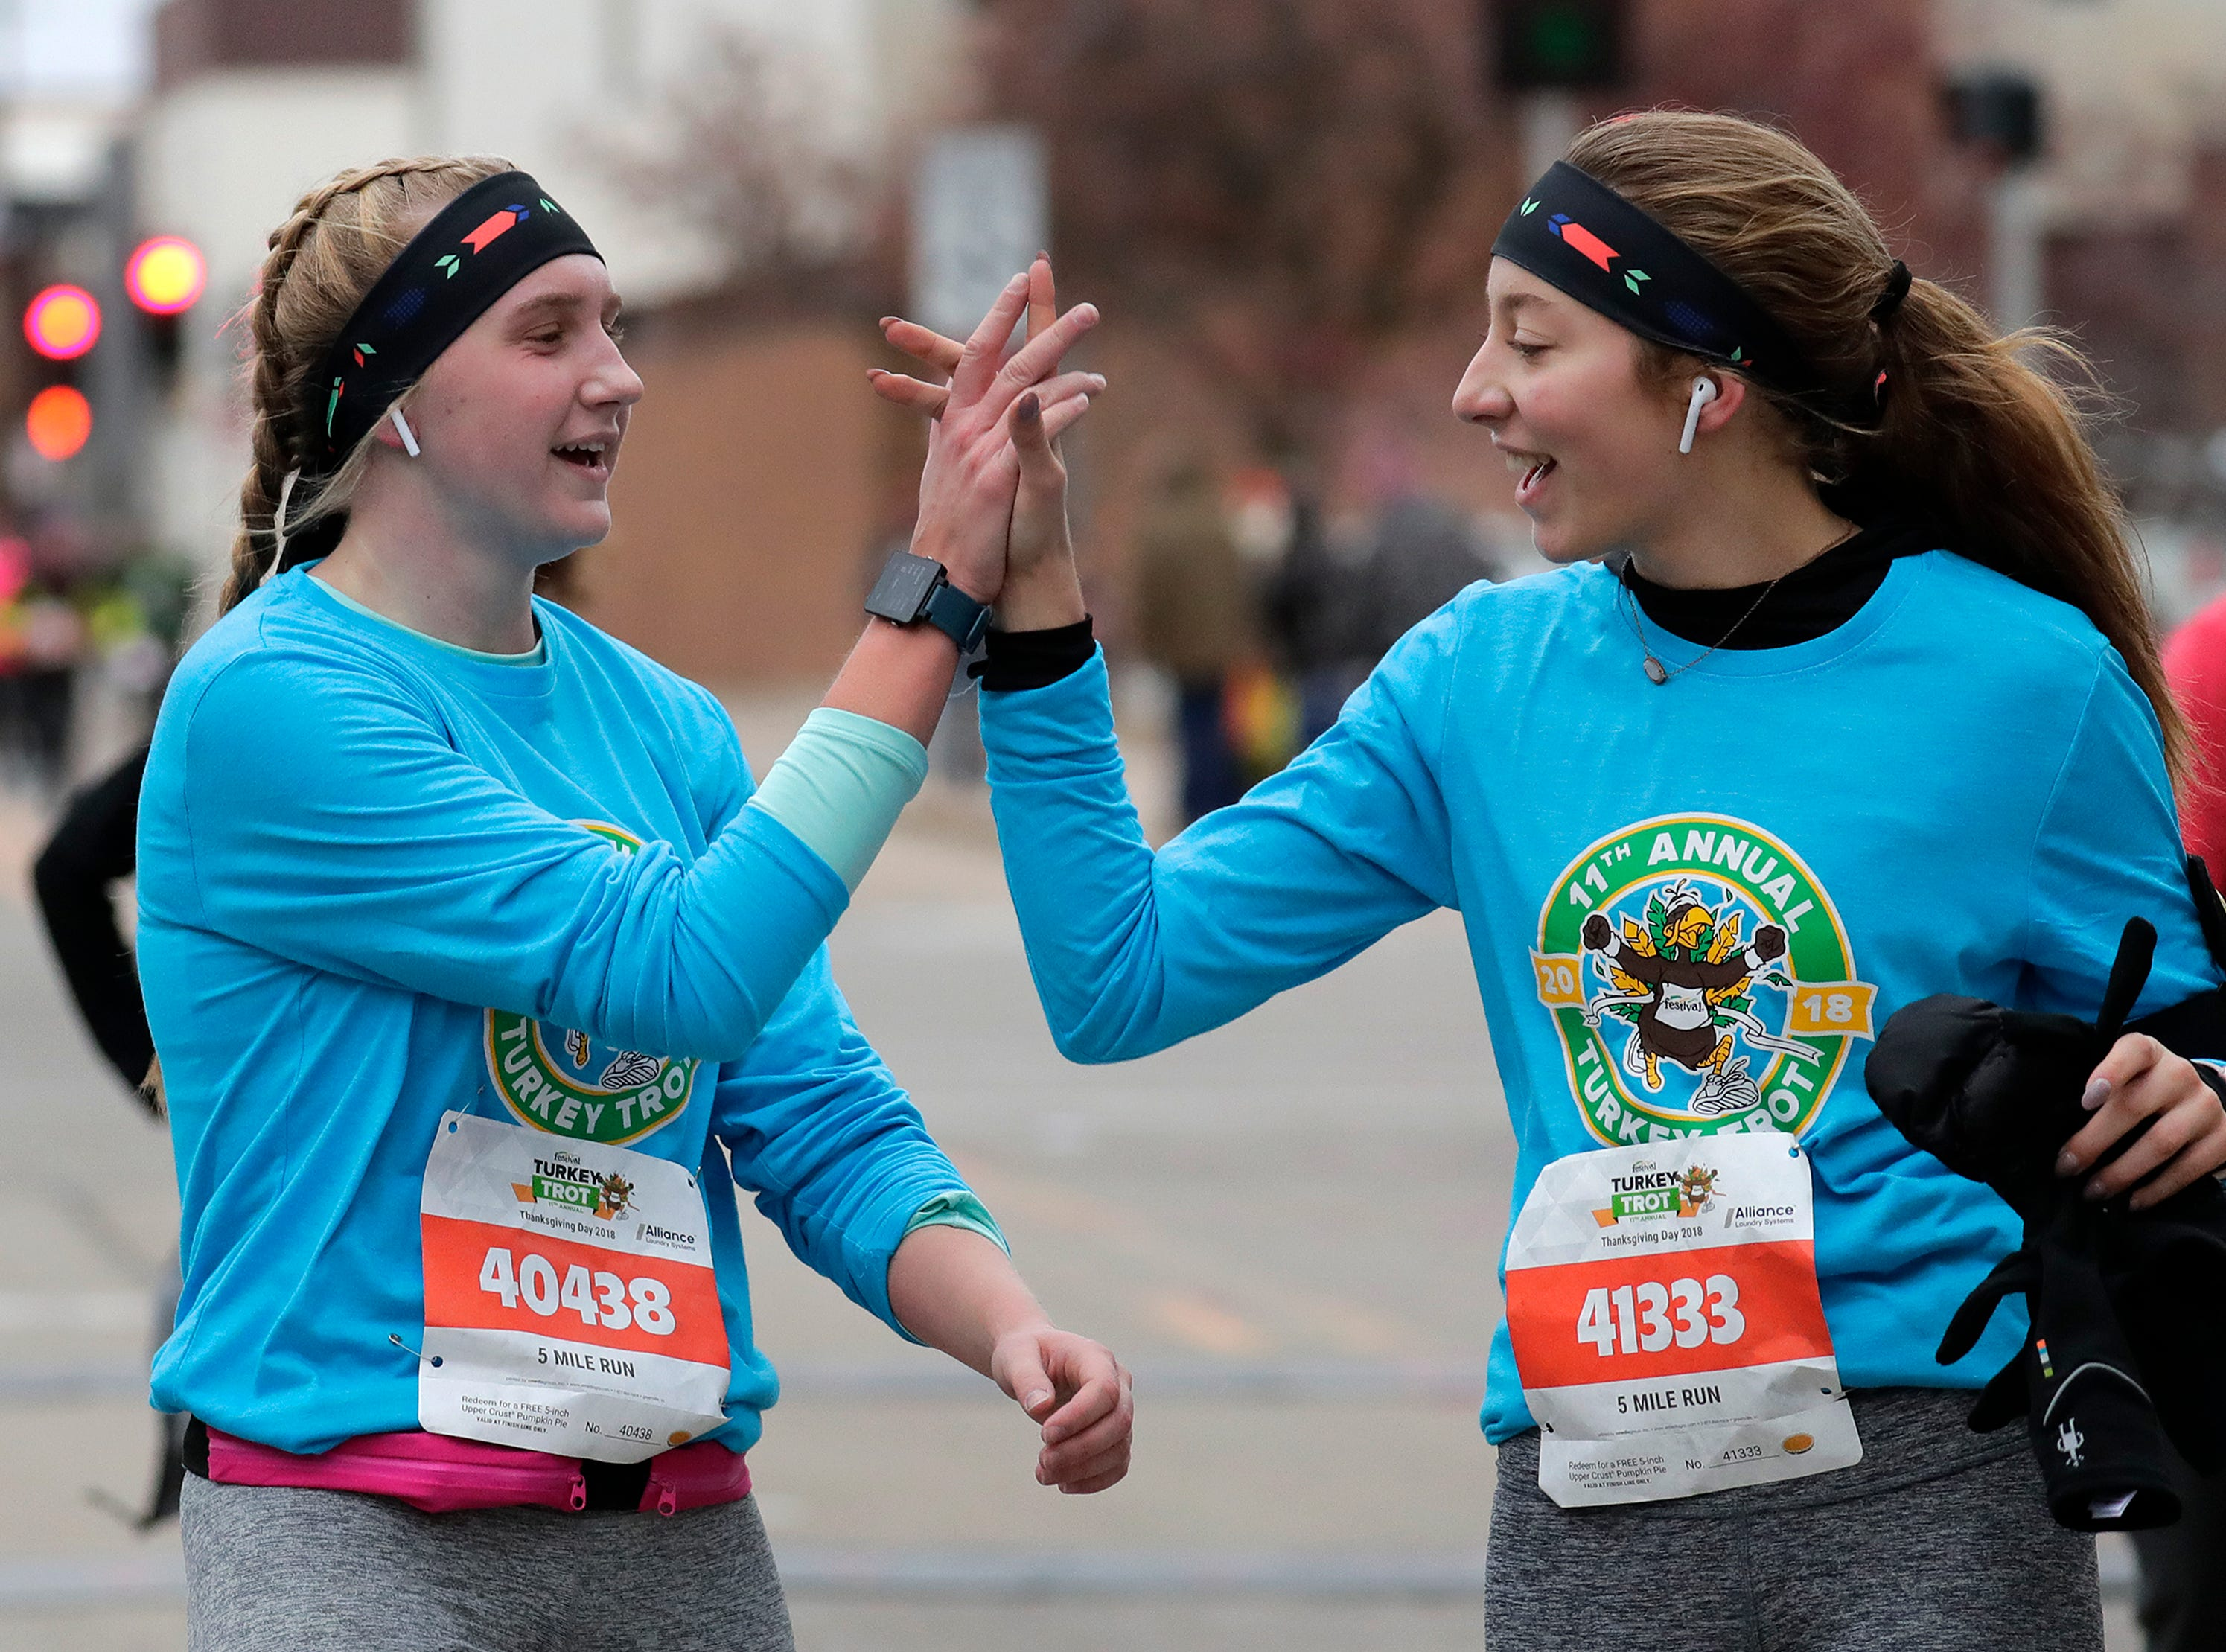 Natalie Dresang, left, and Sarah Messer, both of Kimberly, high-five as they cross the finish line during the 11th Annual Festival Foods Turkey Trot Thursday, November 22, 2018, in Appleton, Wis. Dan Powers/USA TODAY NETWORK-Wisconsin